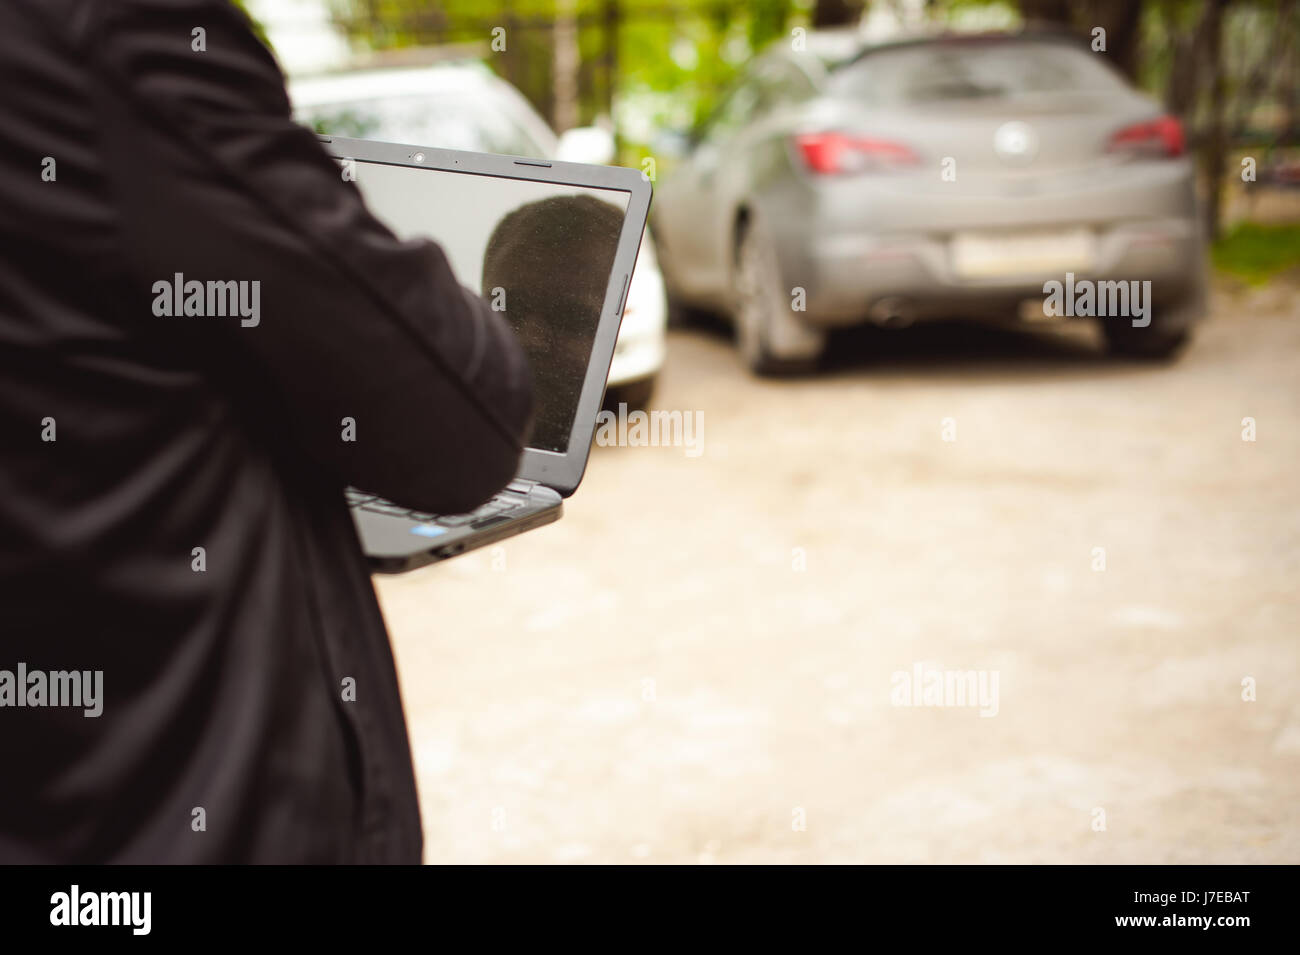 man with a laptop in parking lot in yard near car is doing manipulations with cyber system, concept - Stock Image